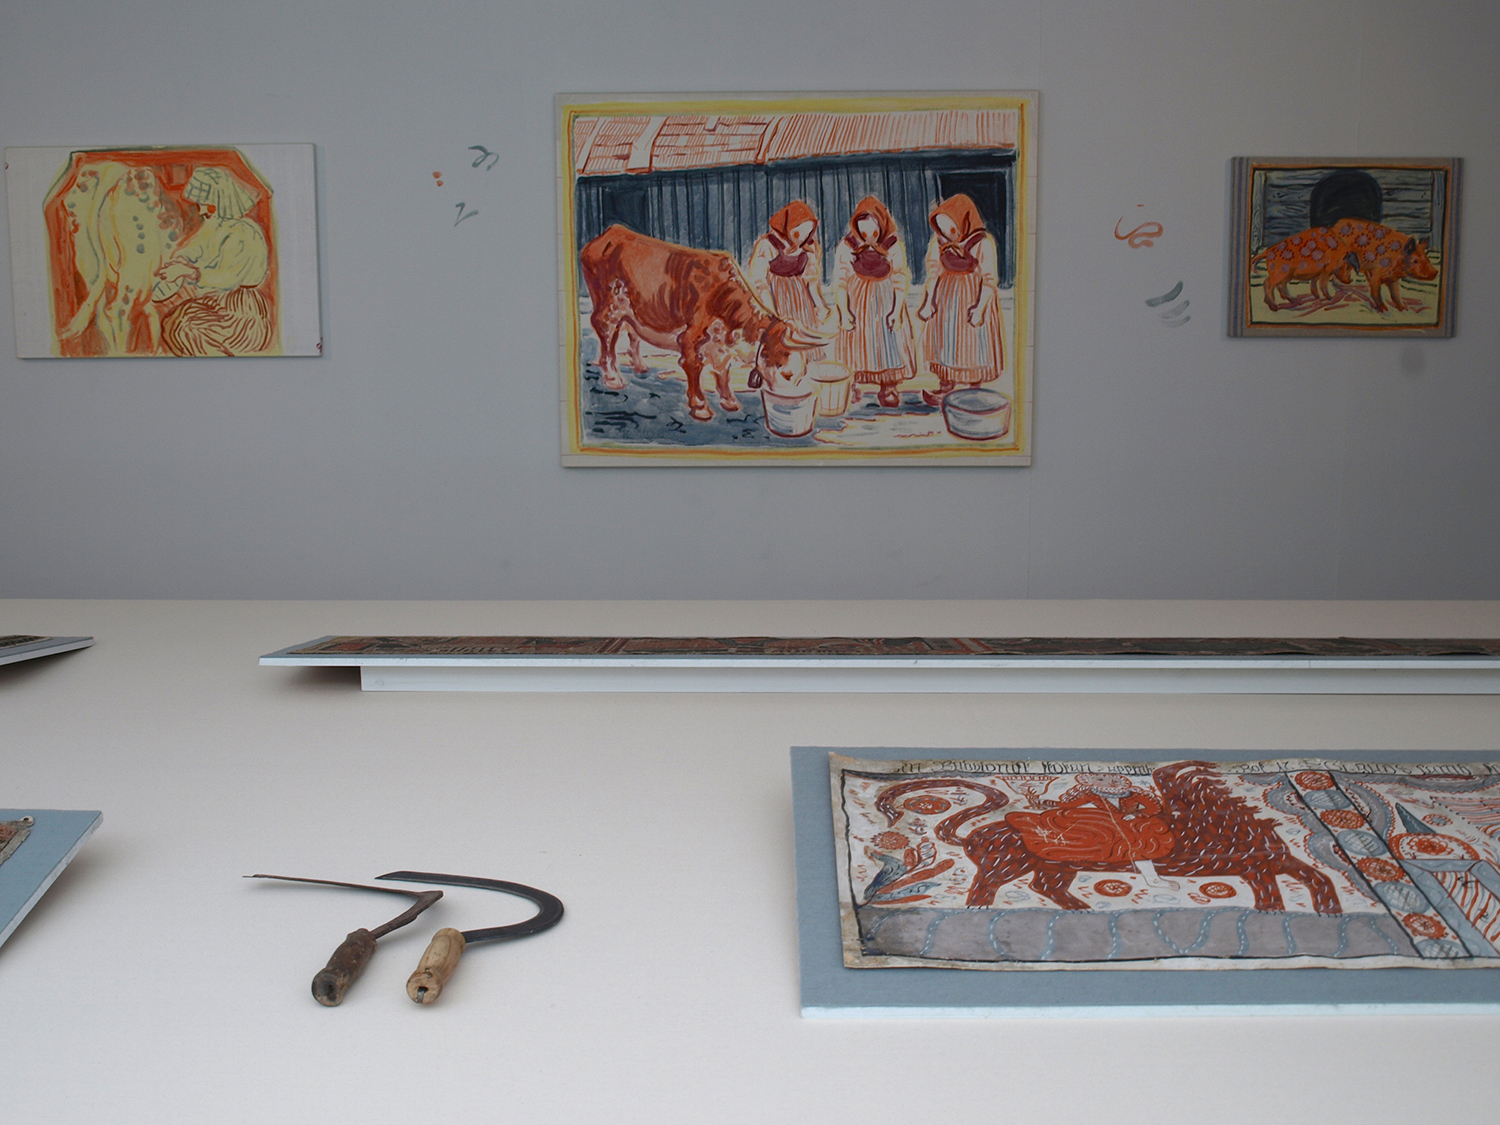 Installation shot with 'The Whore of Bablyon; The Lamb of God; The Holy Trinity; The Crown of Life' anonymous painter of the Sunnerbo school. 1819, egg tempera on rag paper, collection of Hallands Art Museum.